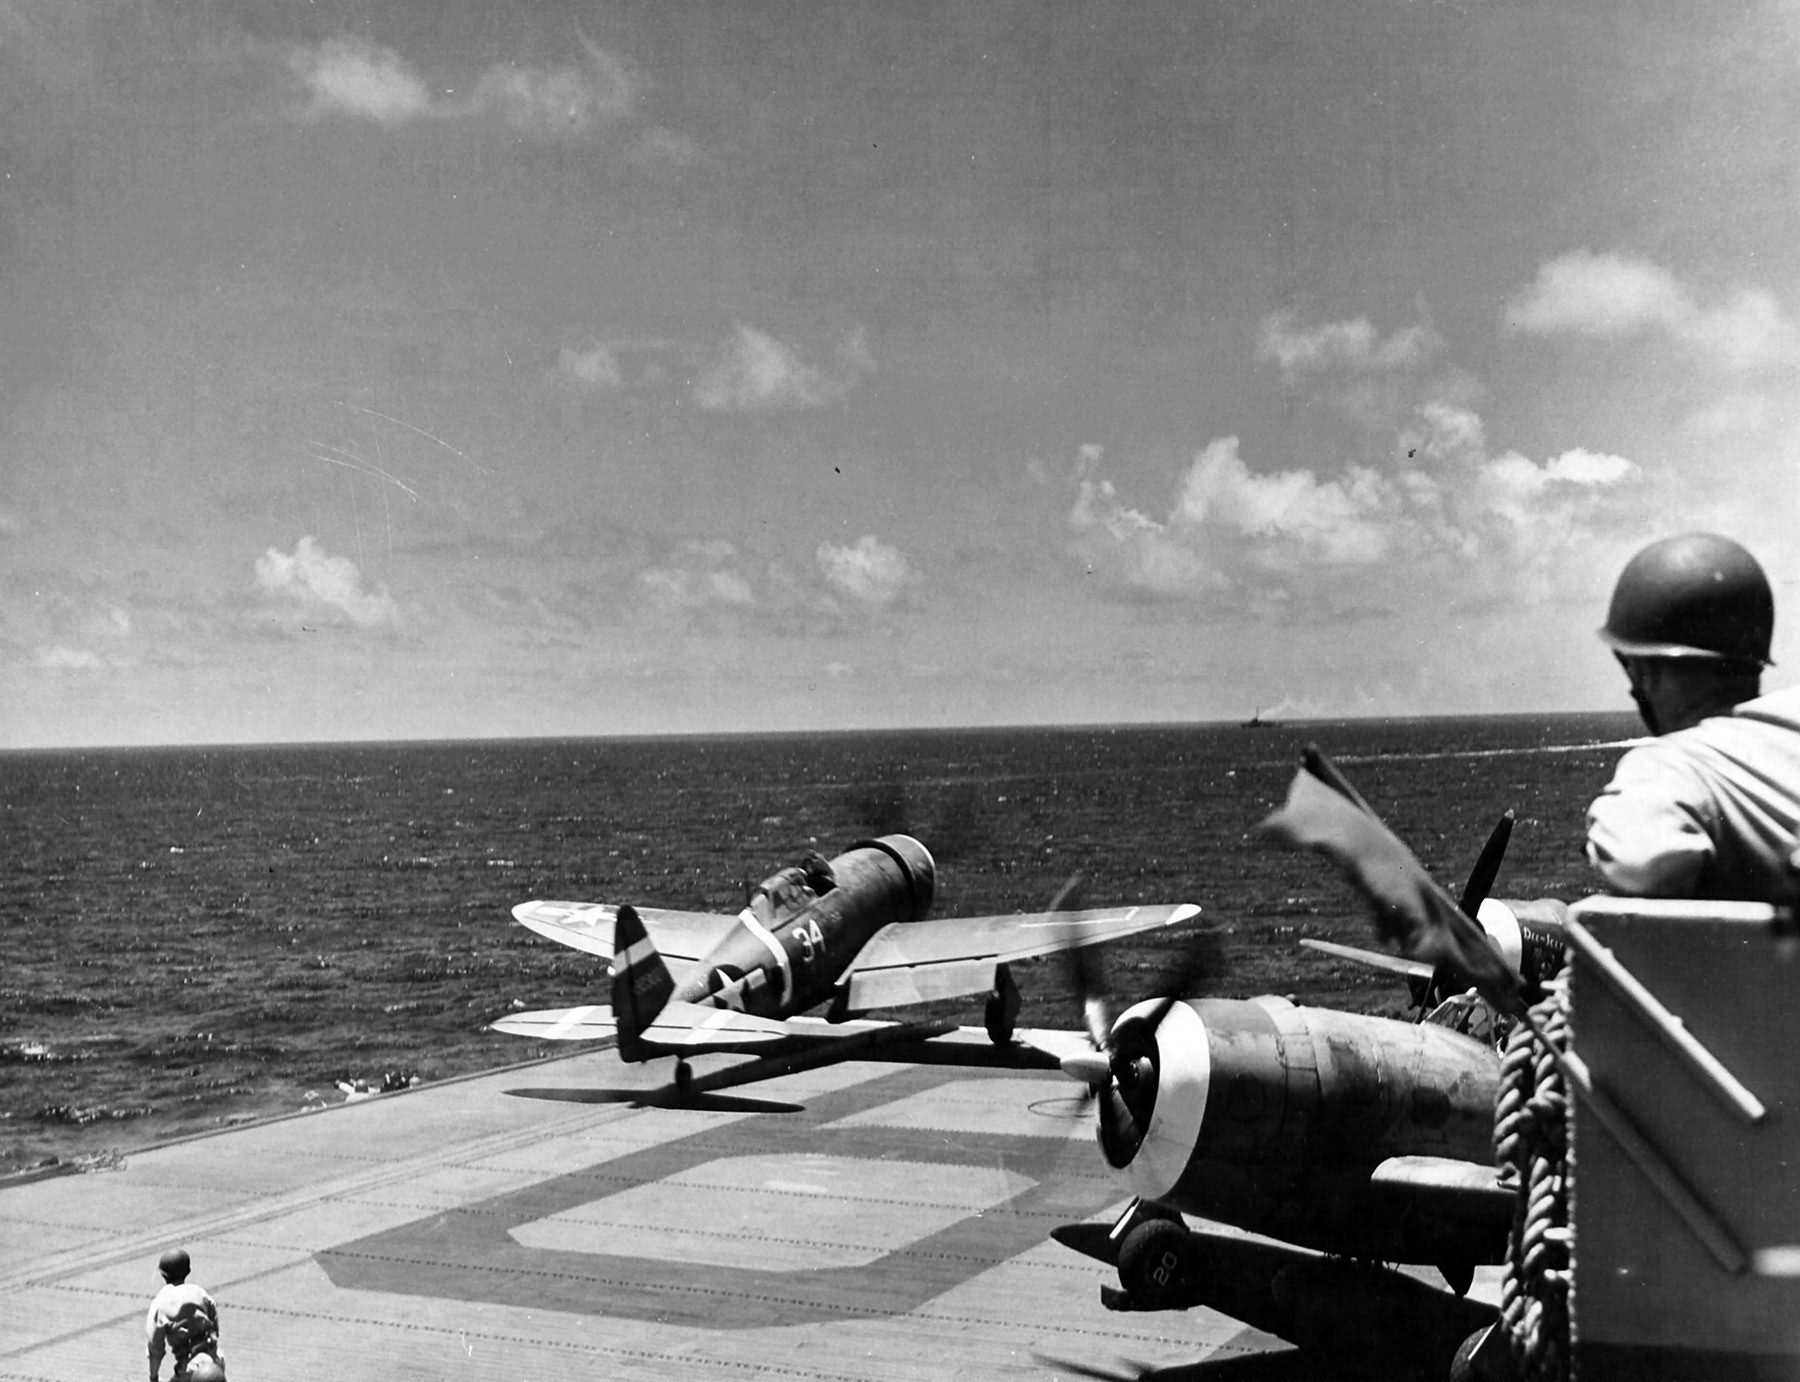 P-47 Thunderbolt #34 of the 73rd Fighter Squadron, 318th Fighter Group takes off from the USS Manila Bay CVE-61